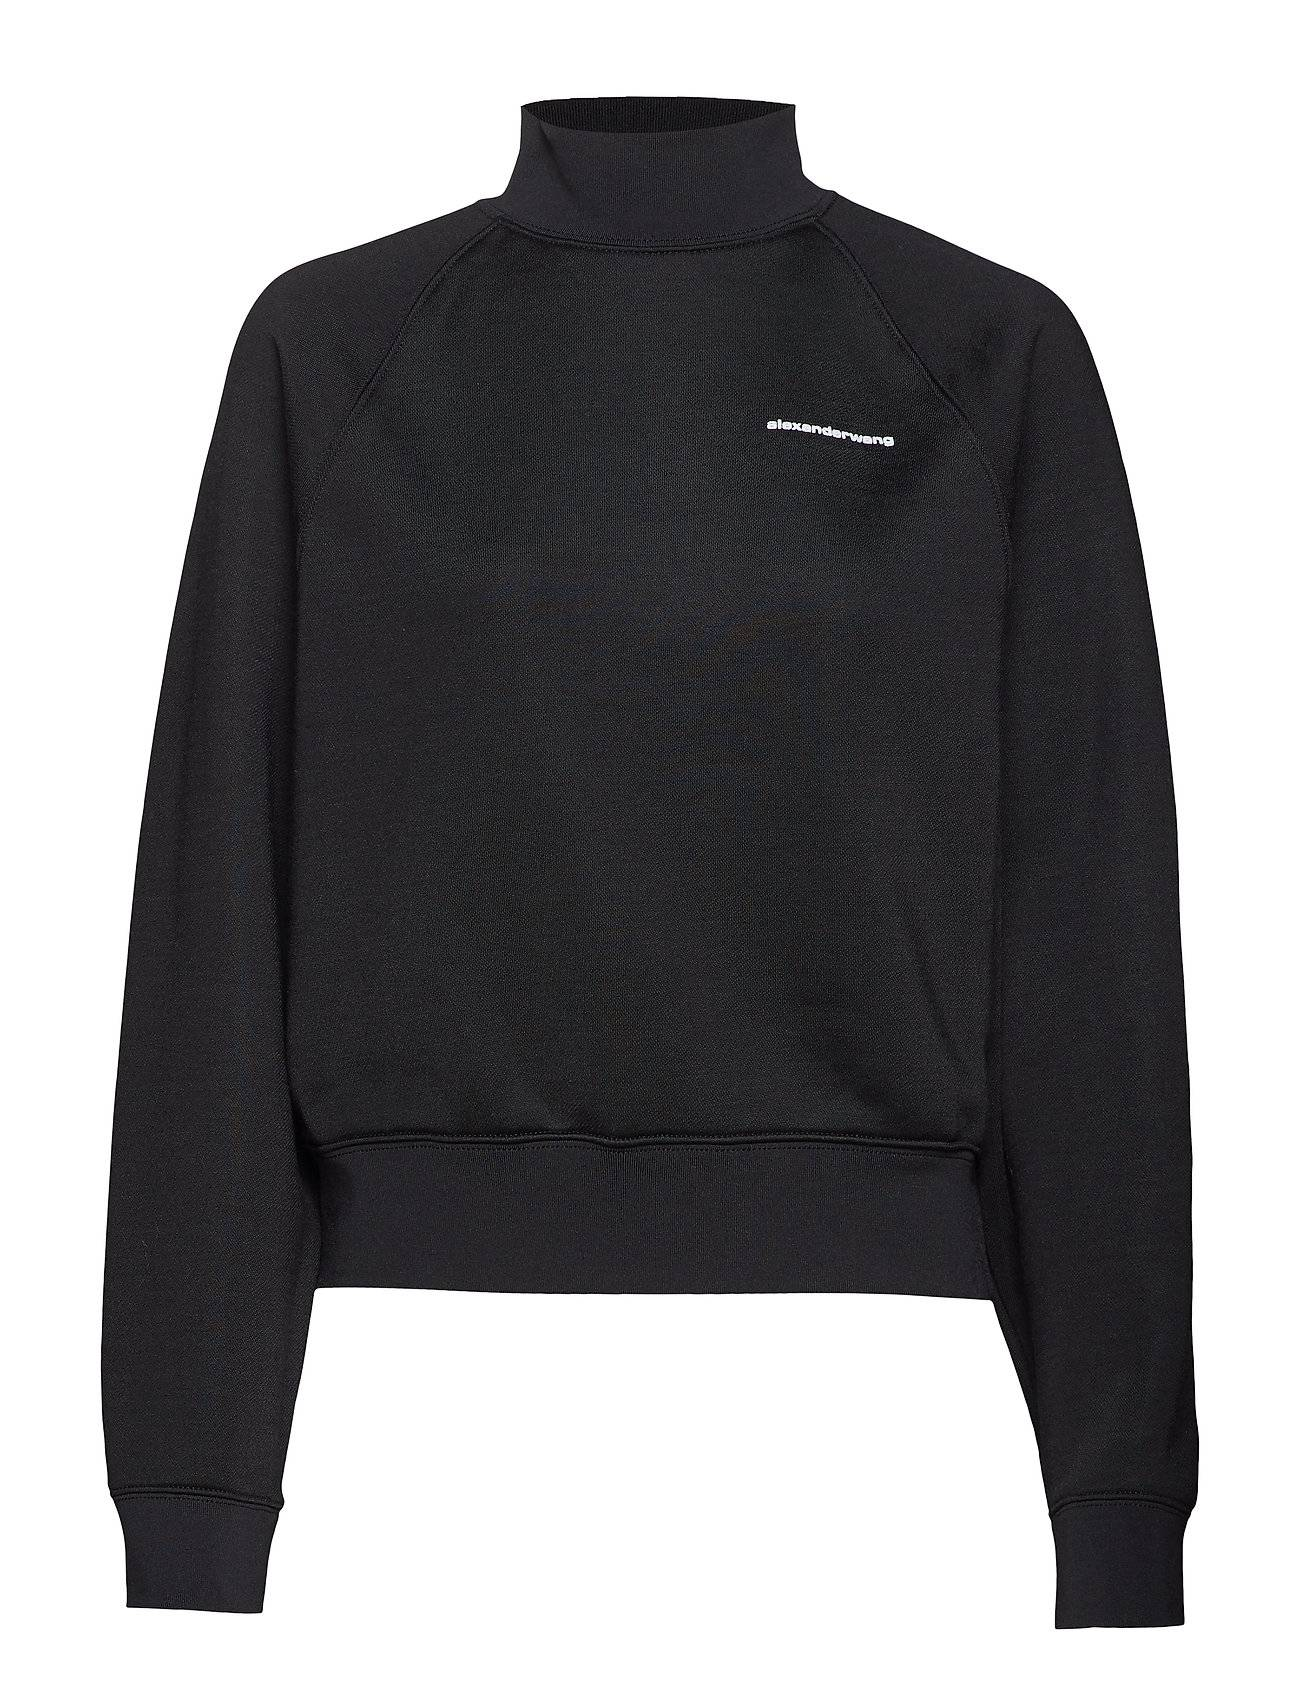 T by Alexander Wang Heavy Sleek French Terry Turtle Neck Sweatshirt